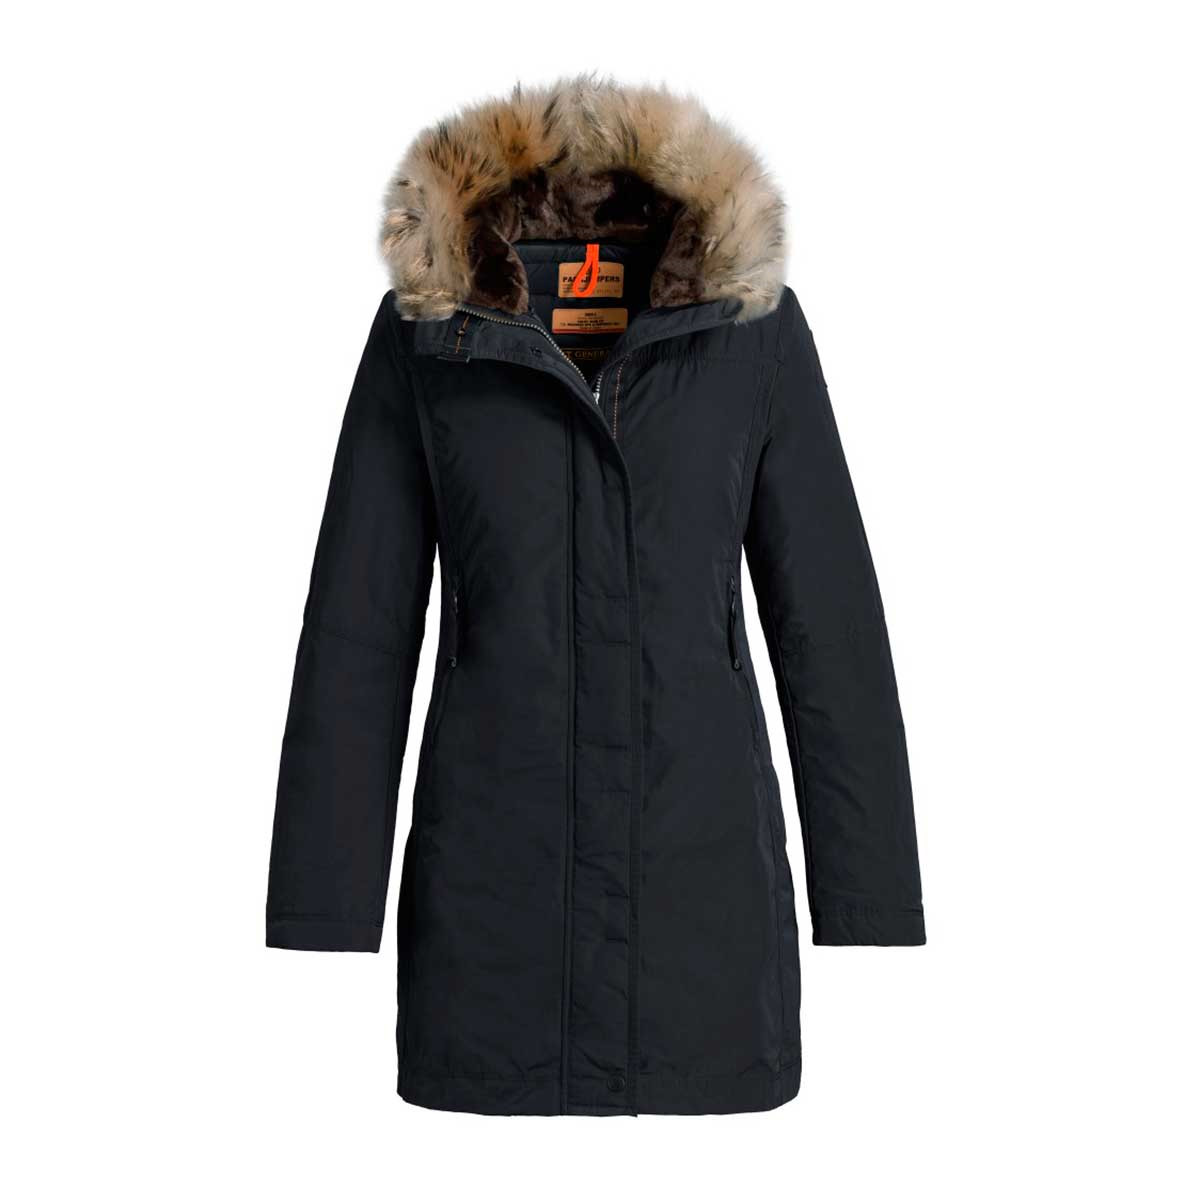 PARAJUMPERS JAKKE - SELMA BLUE BLACK